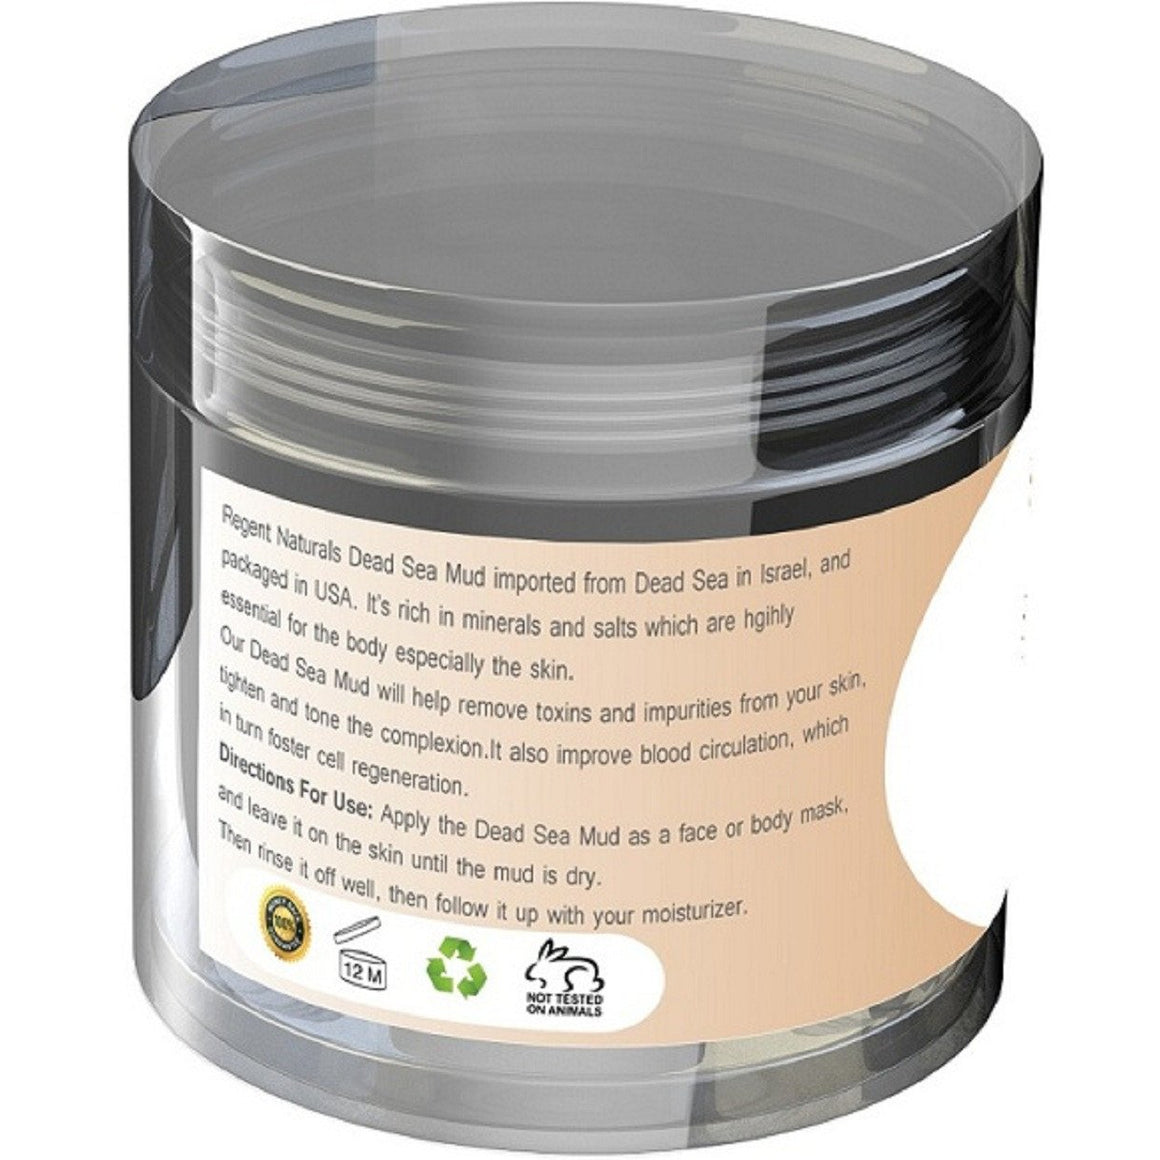 Premium Dead Sea Mud 6oz. Rich in Minerals from Dead Sea Israel. Get ONE Now!